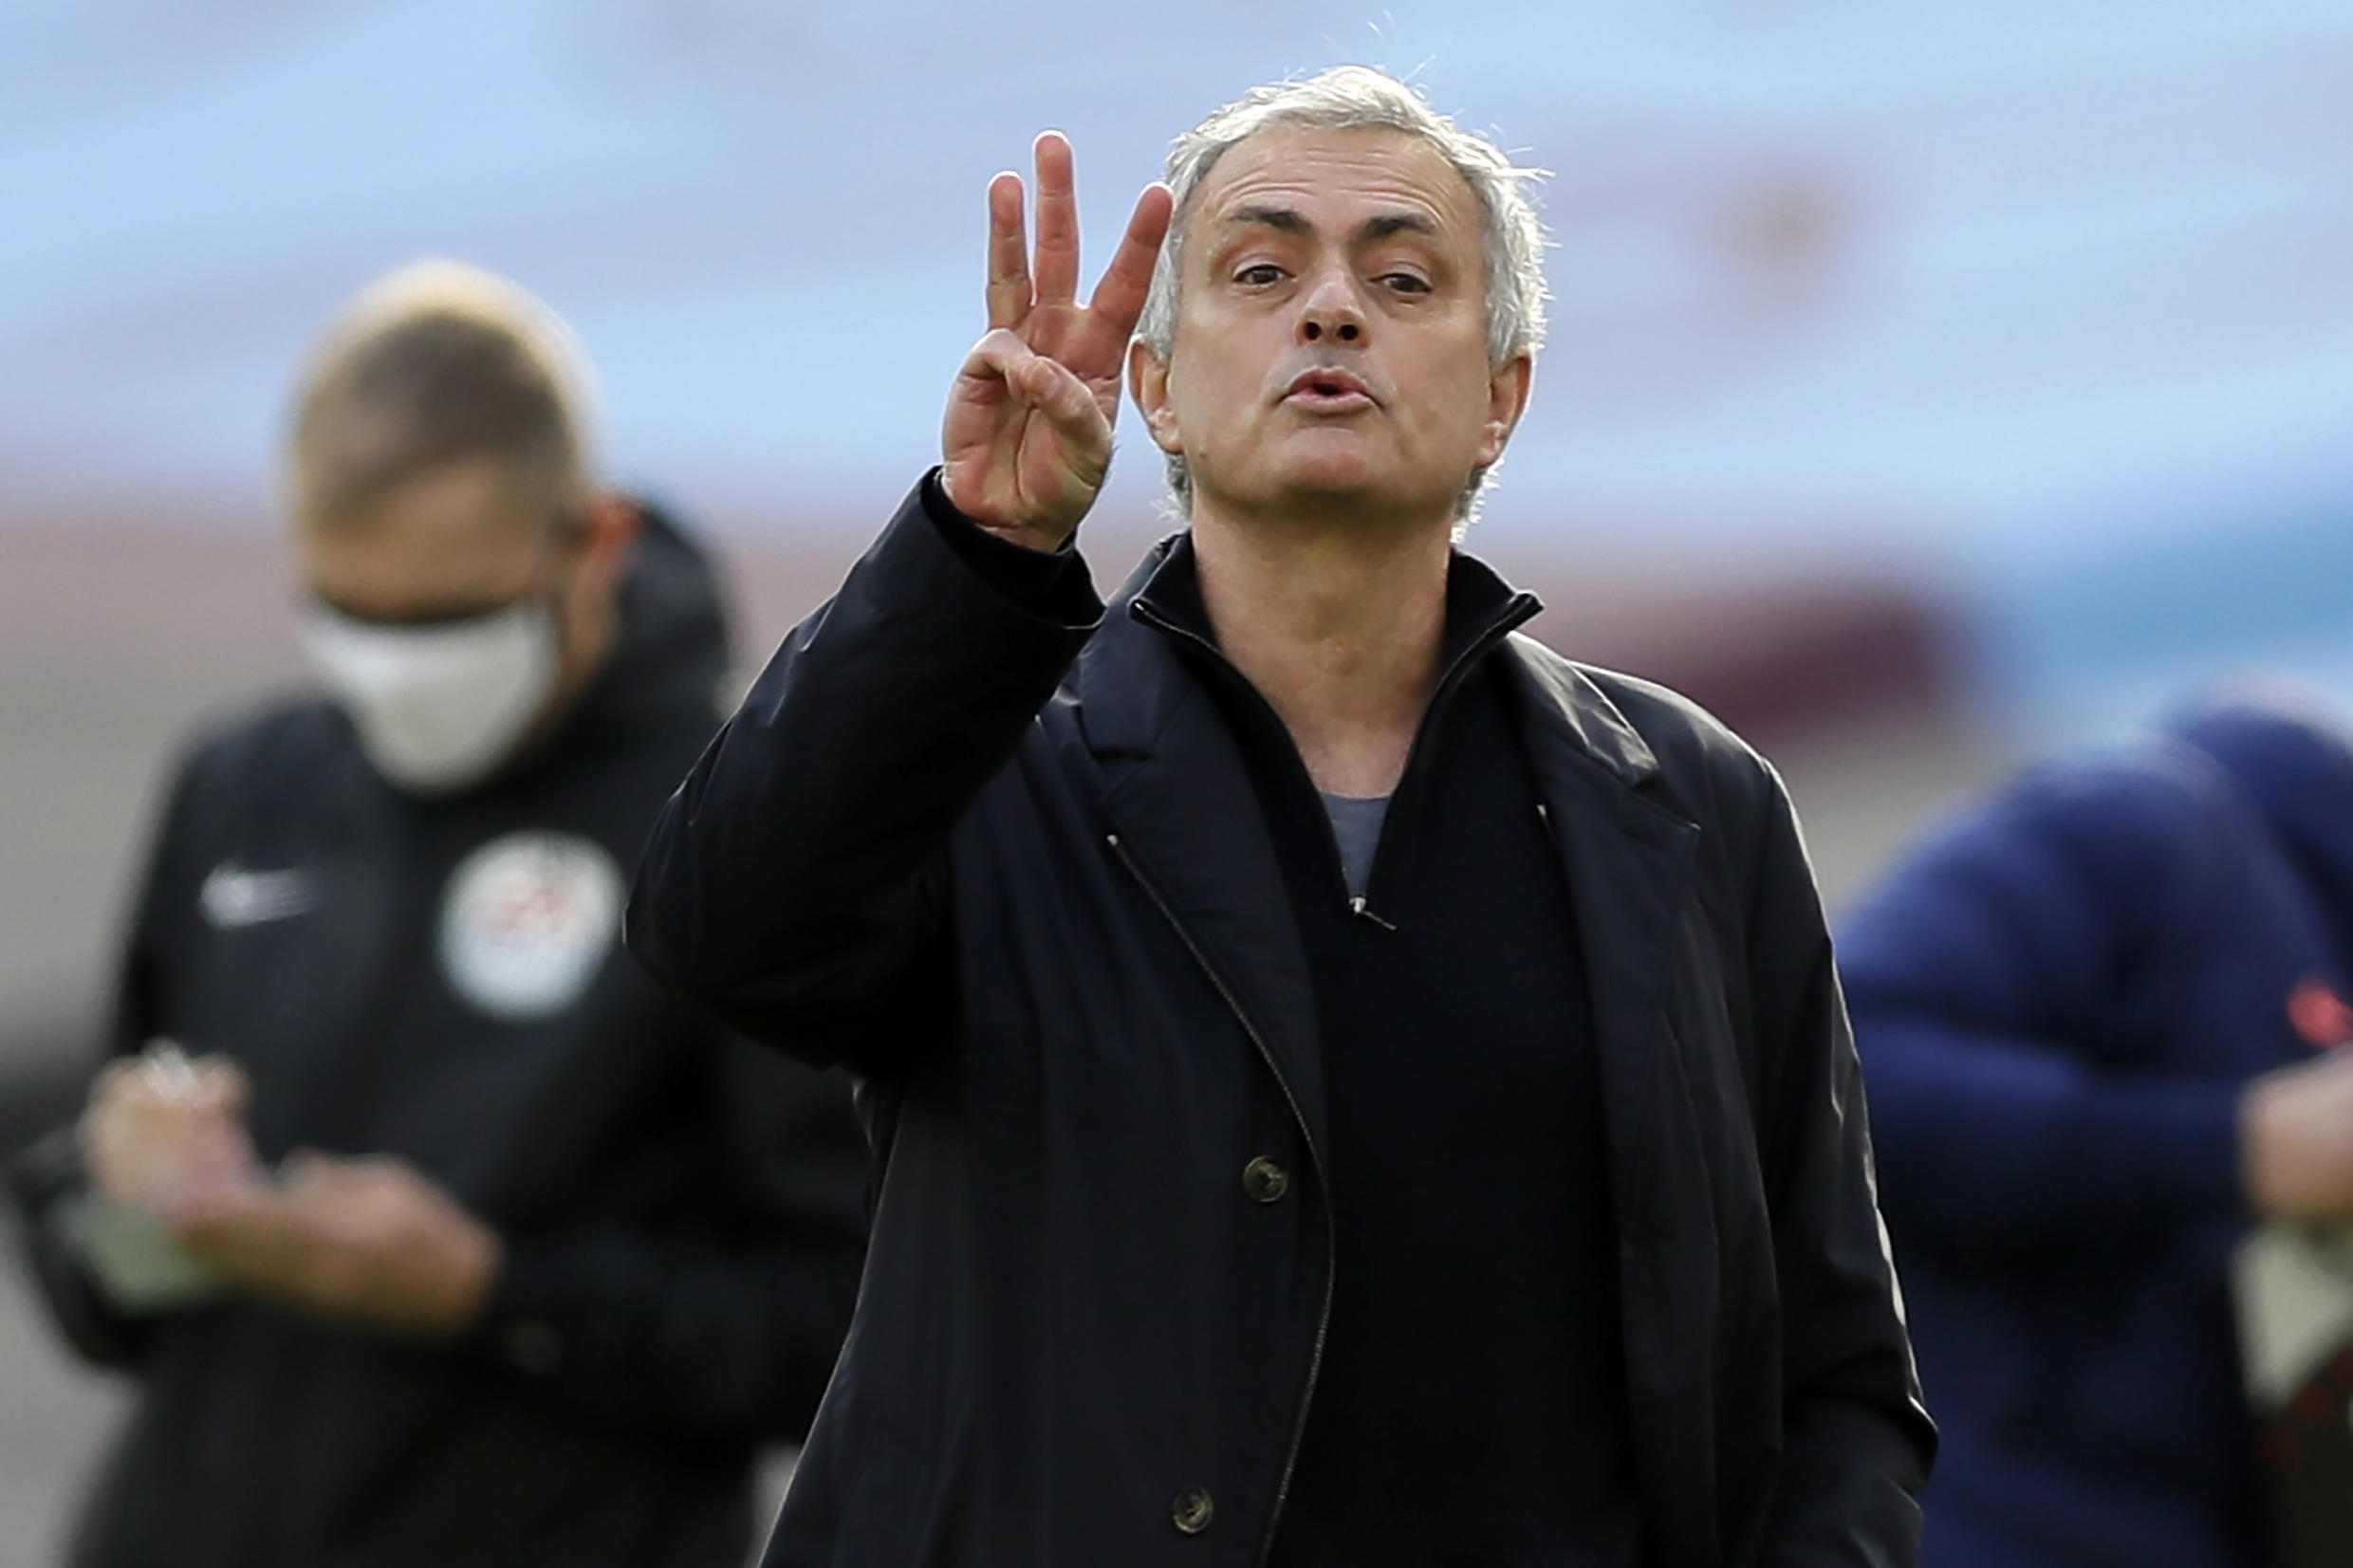 Jose Mourinho is searching for ways to arrest Tottenham's decline